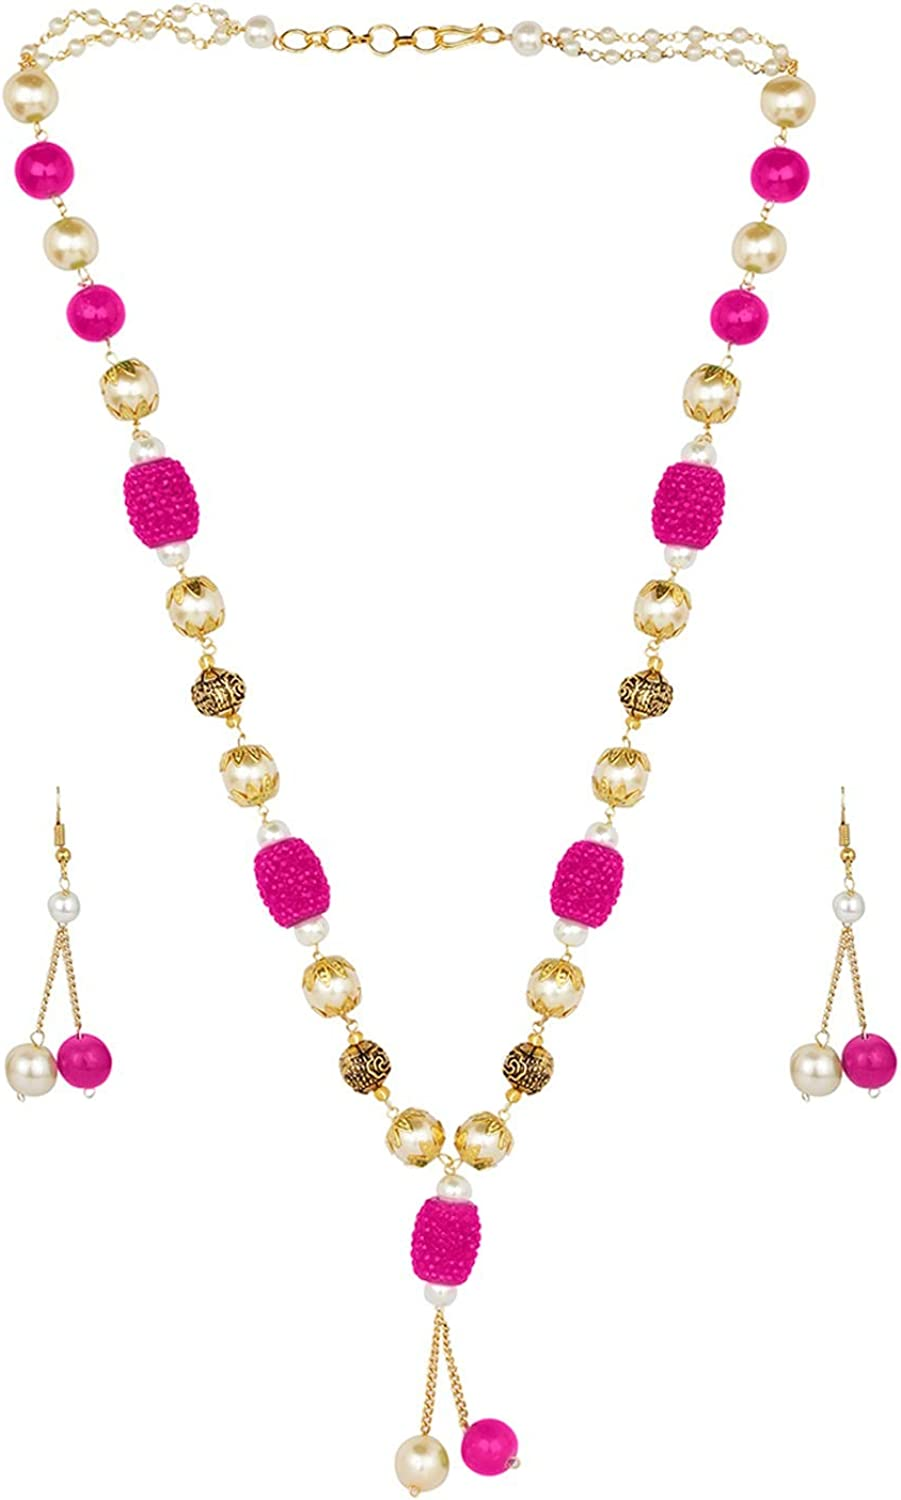 Efulgenz Indian Bollywood Boho Antique Vintage Tribal Beaded Pink Pearl Strand Statement Neckalce Earrings Jewelry Set (Color Options)